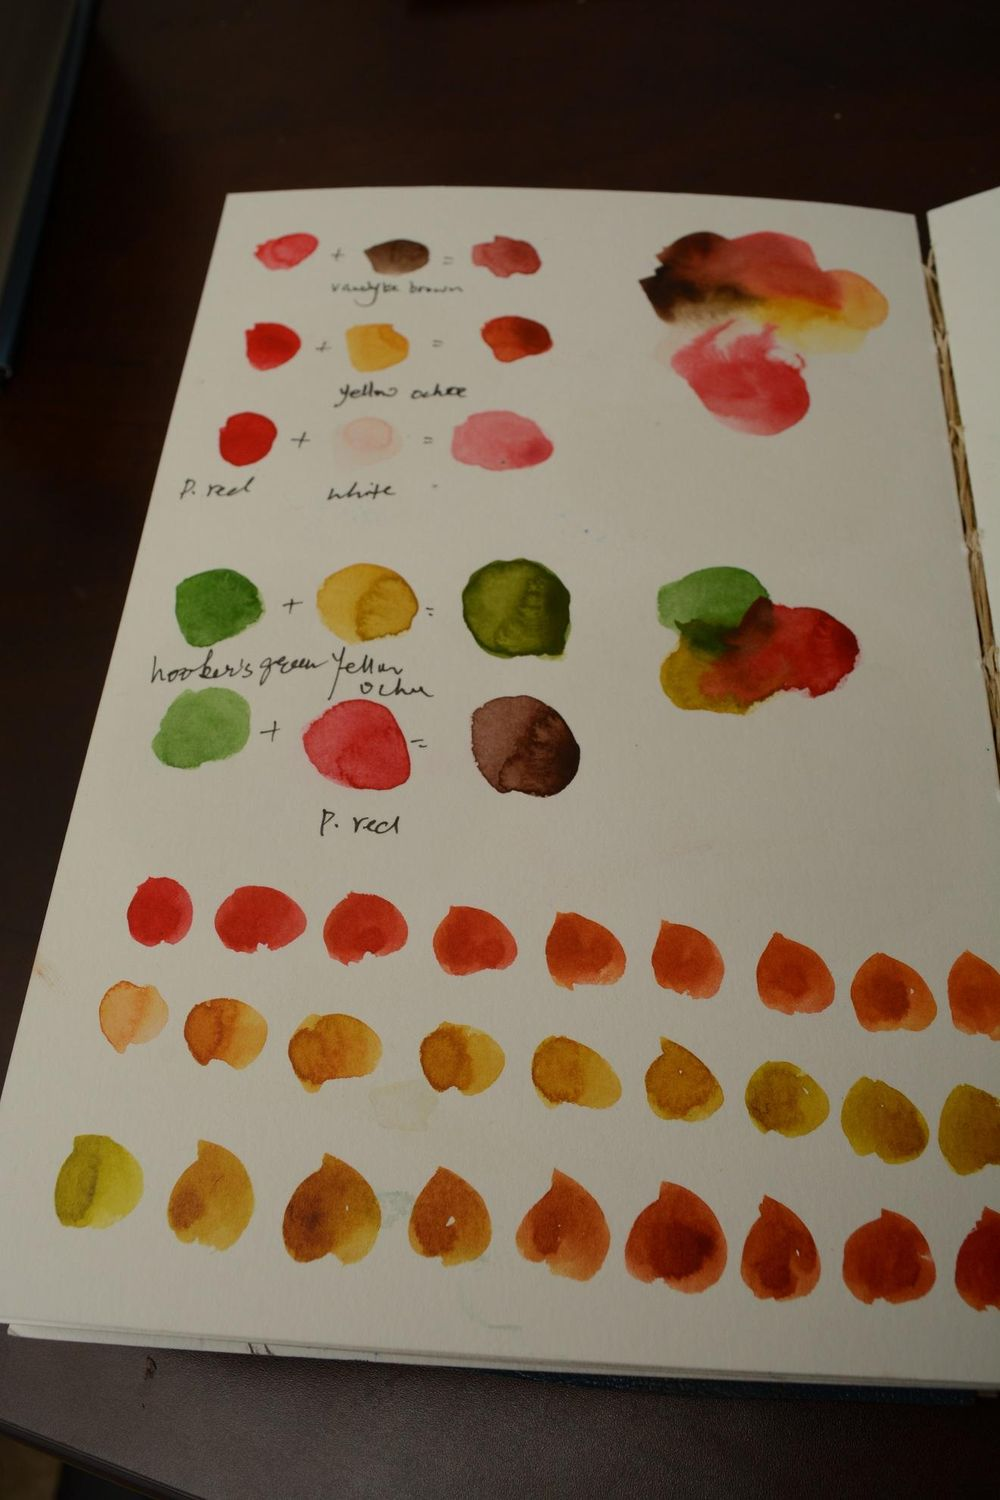 20 Shades of Peach - image 1 - student project